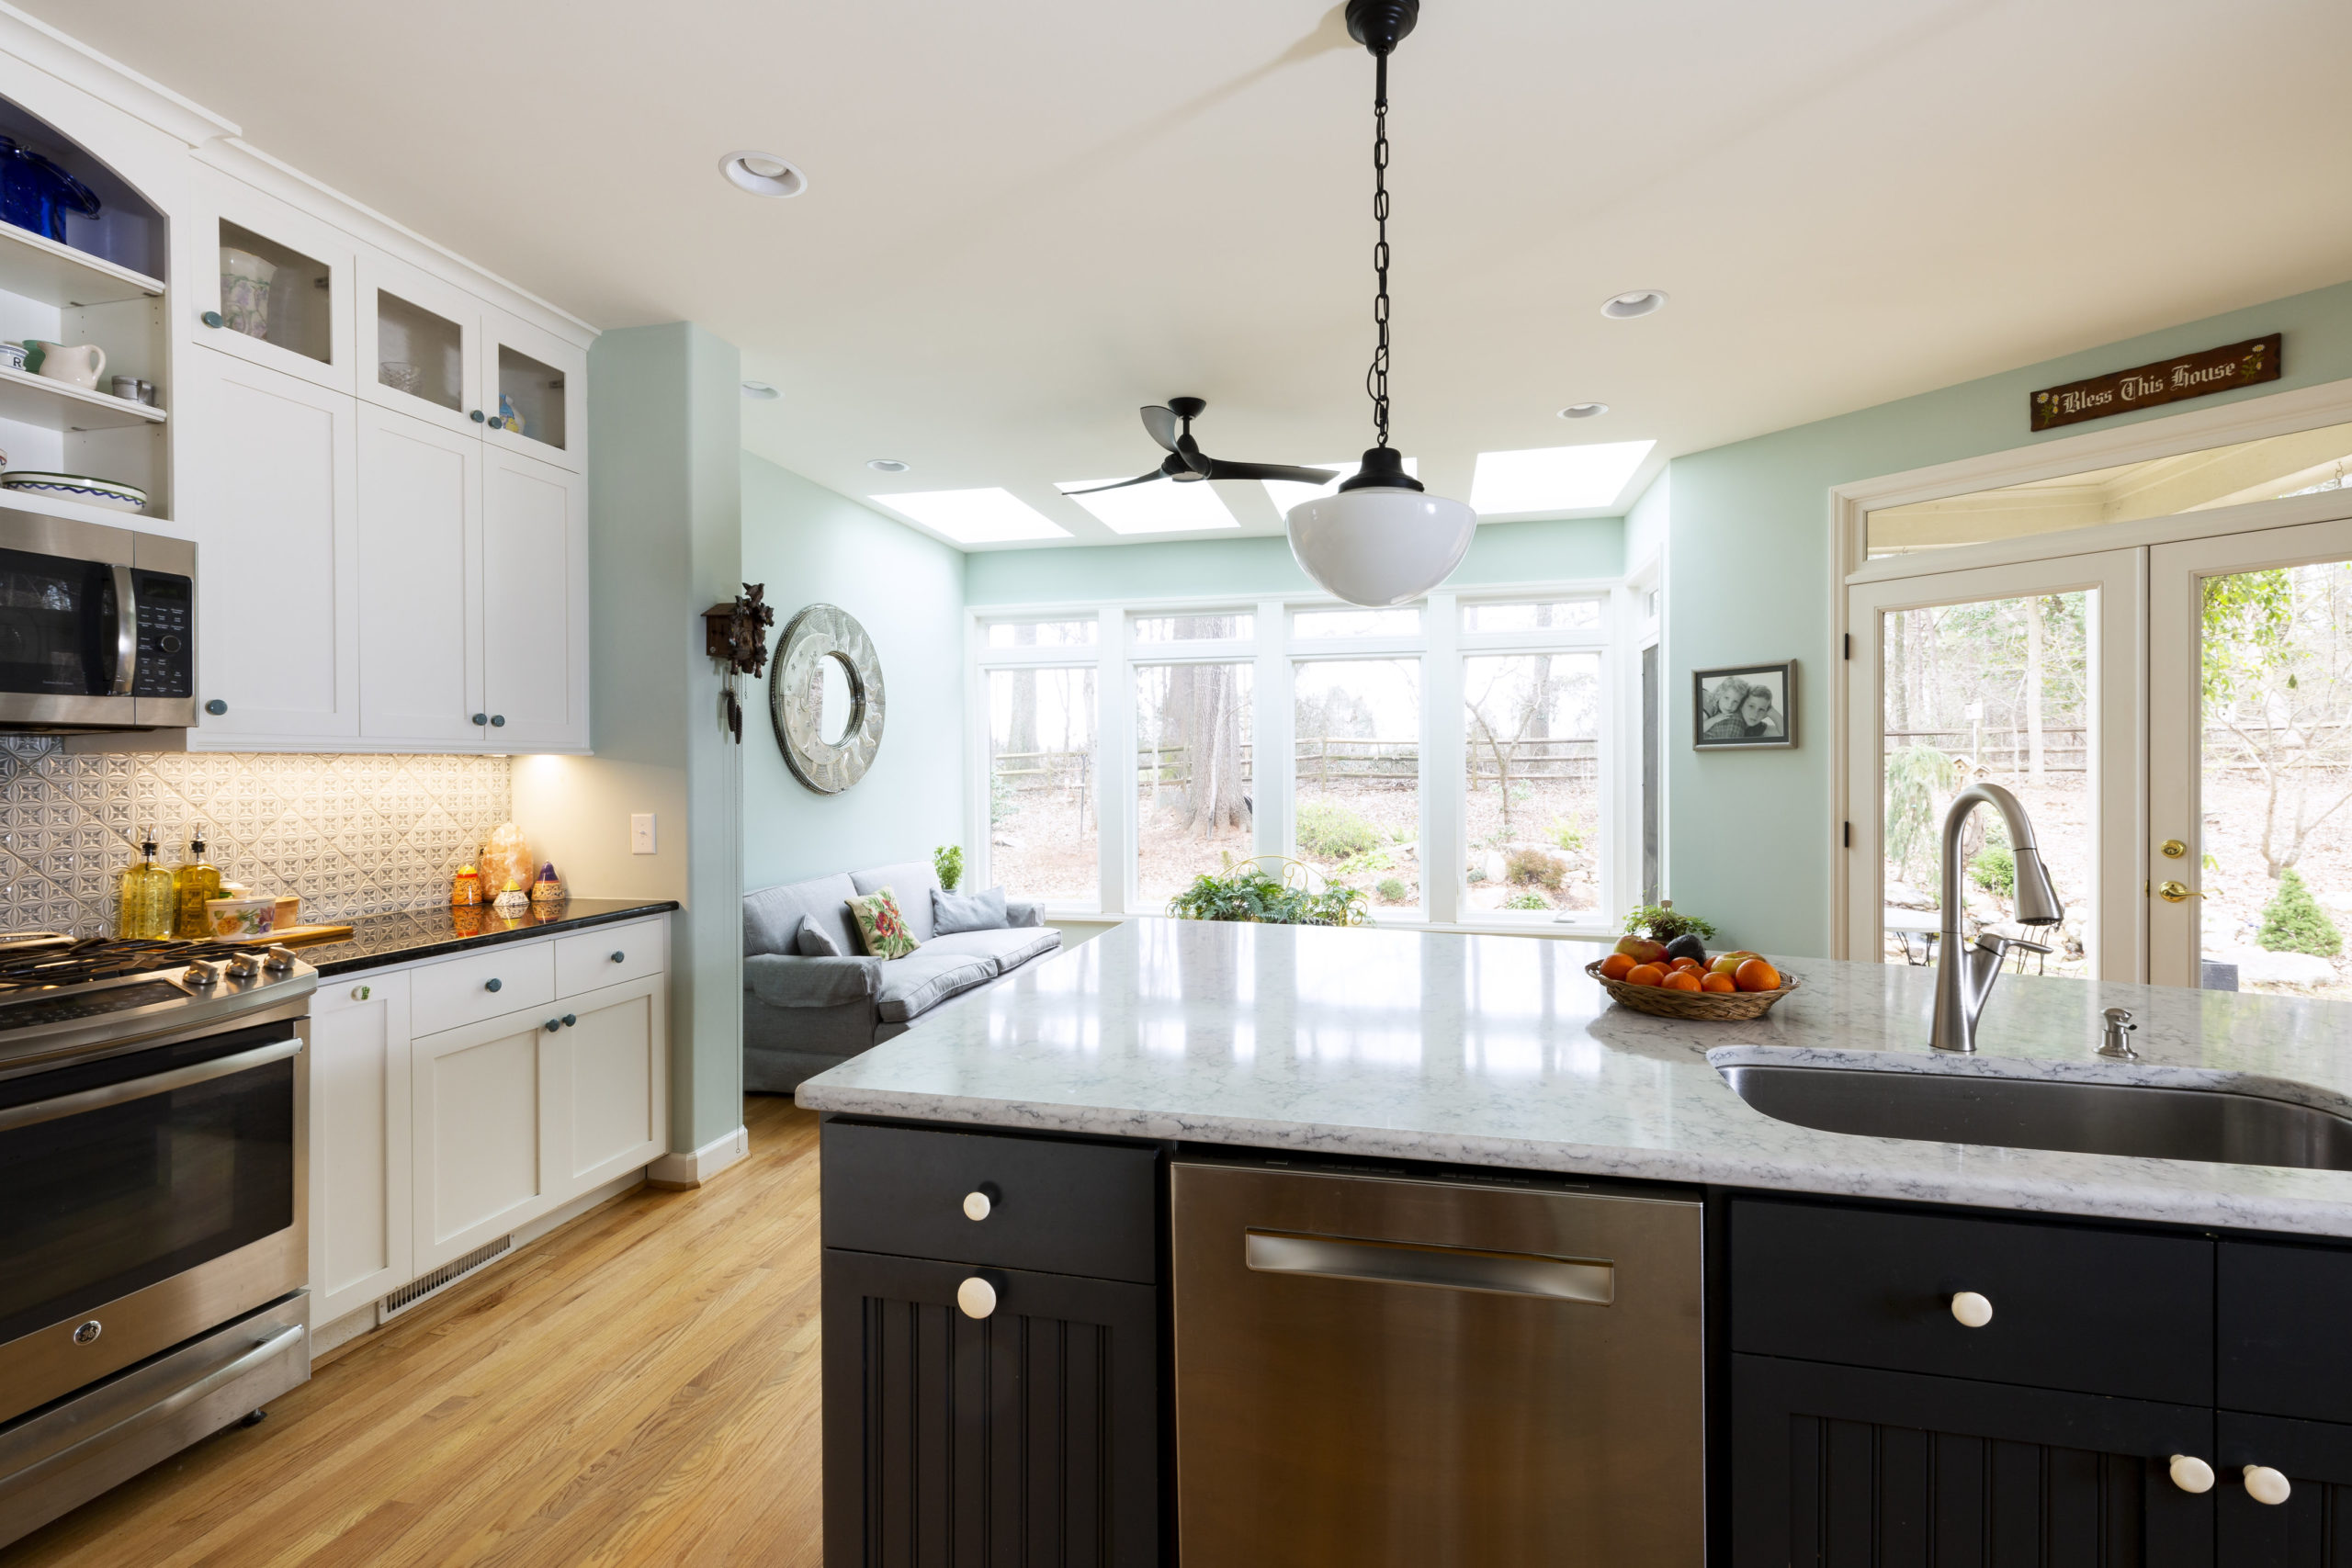 Storage Solutions for Your Kitchen Renovation